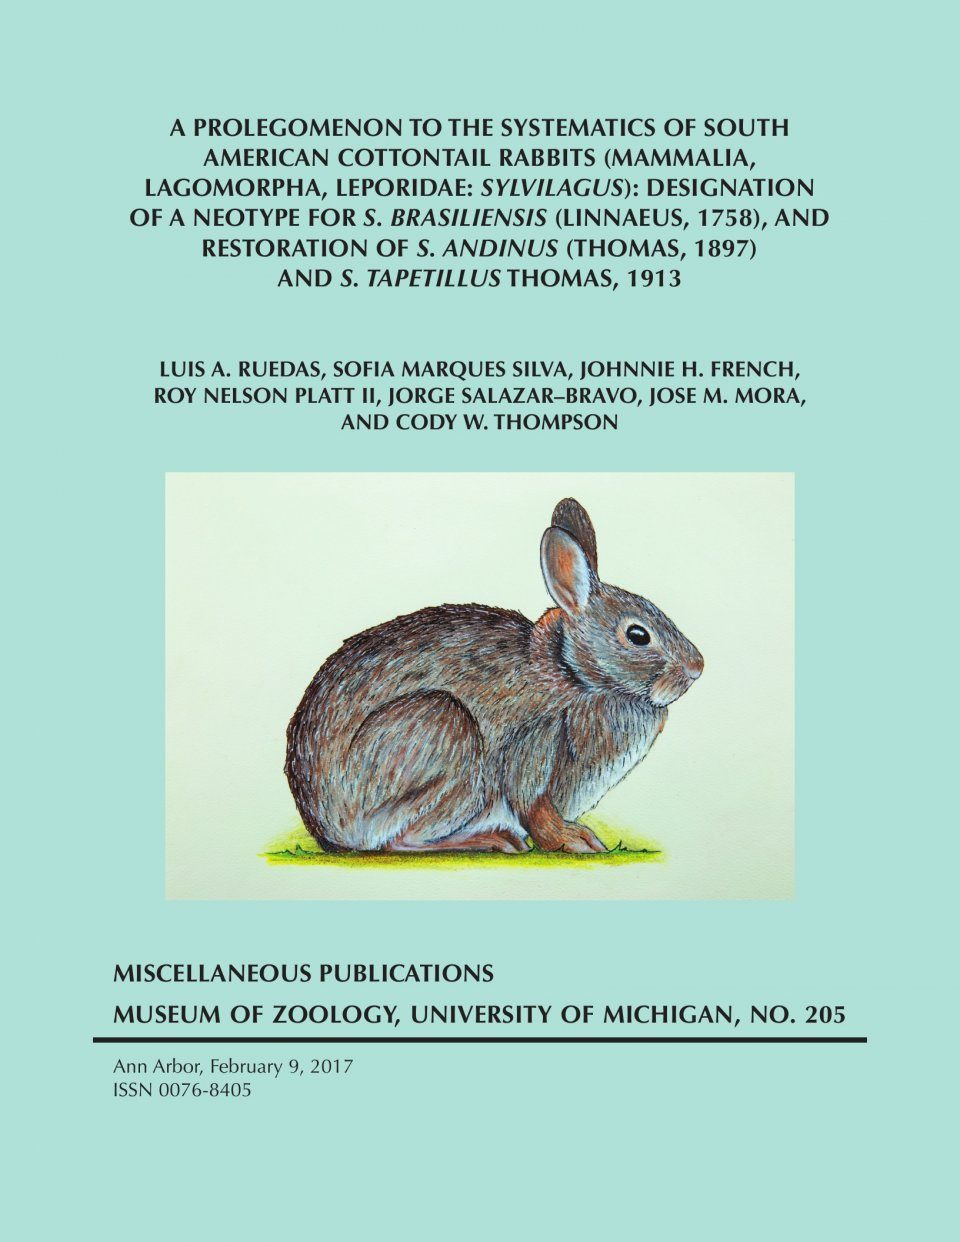 A Prolegomenon to the Systematics of South American Cottontail Rabbits (Mammalia, Lagomorpha Leporidae: Sylvilagus)